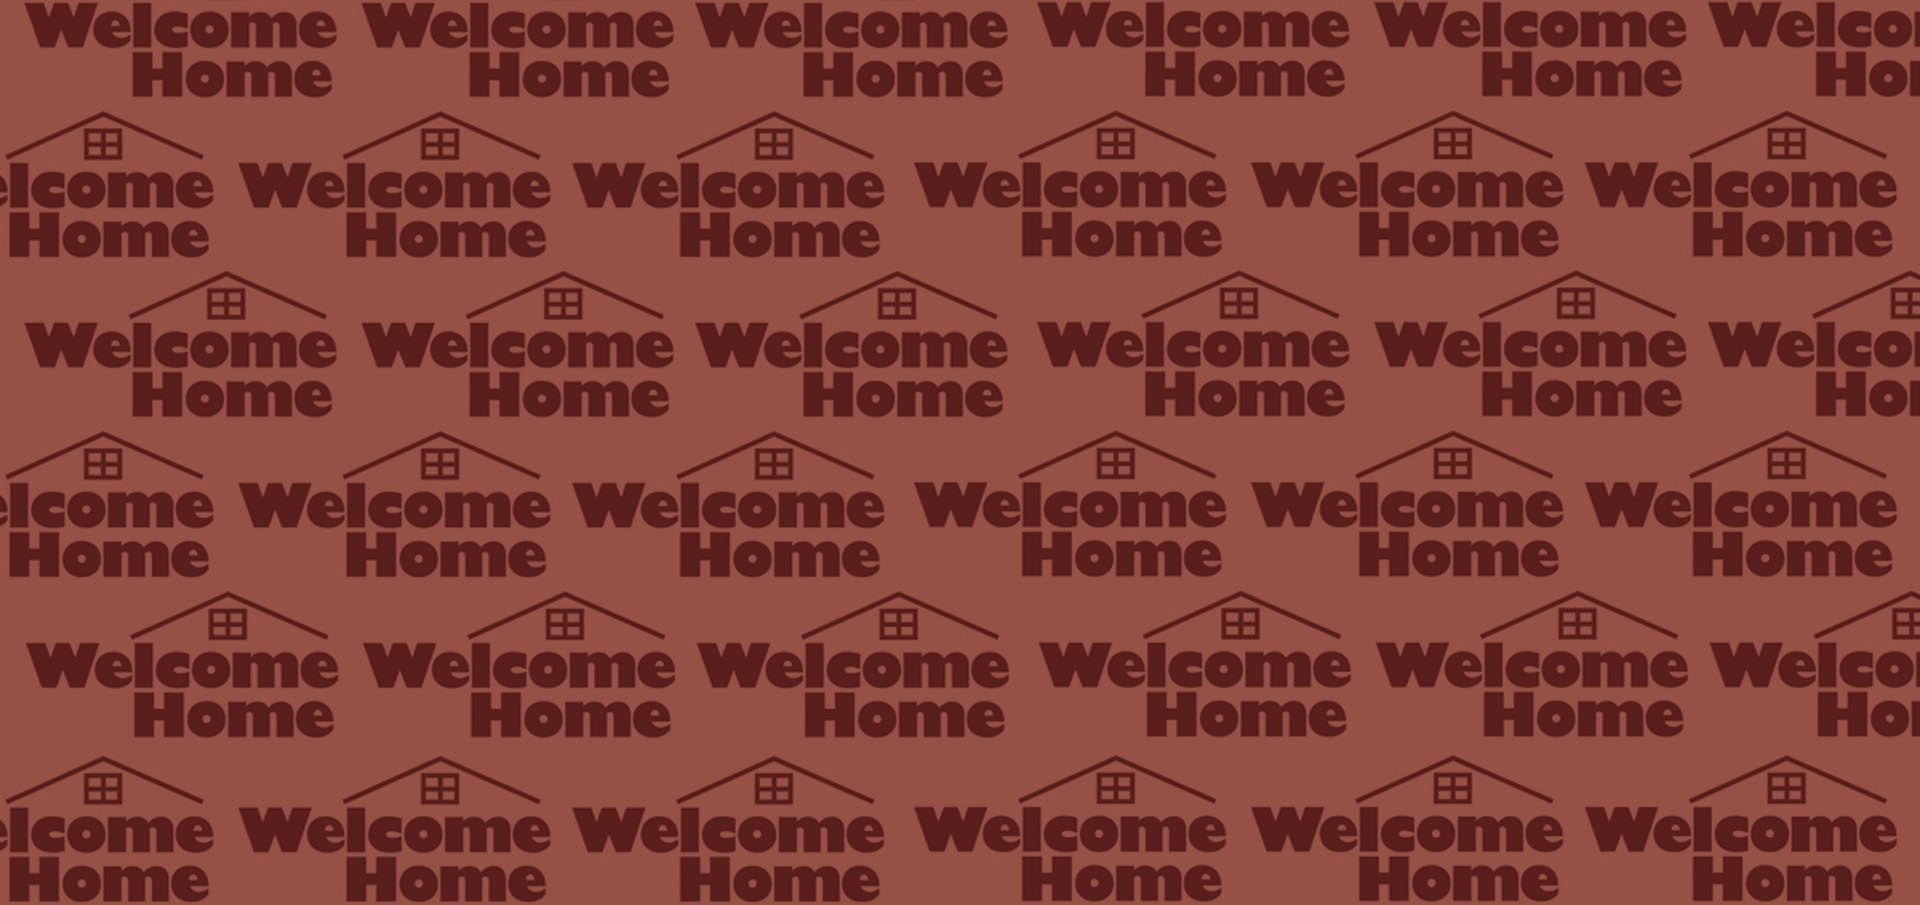 Background - Welcome Home Funds